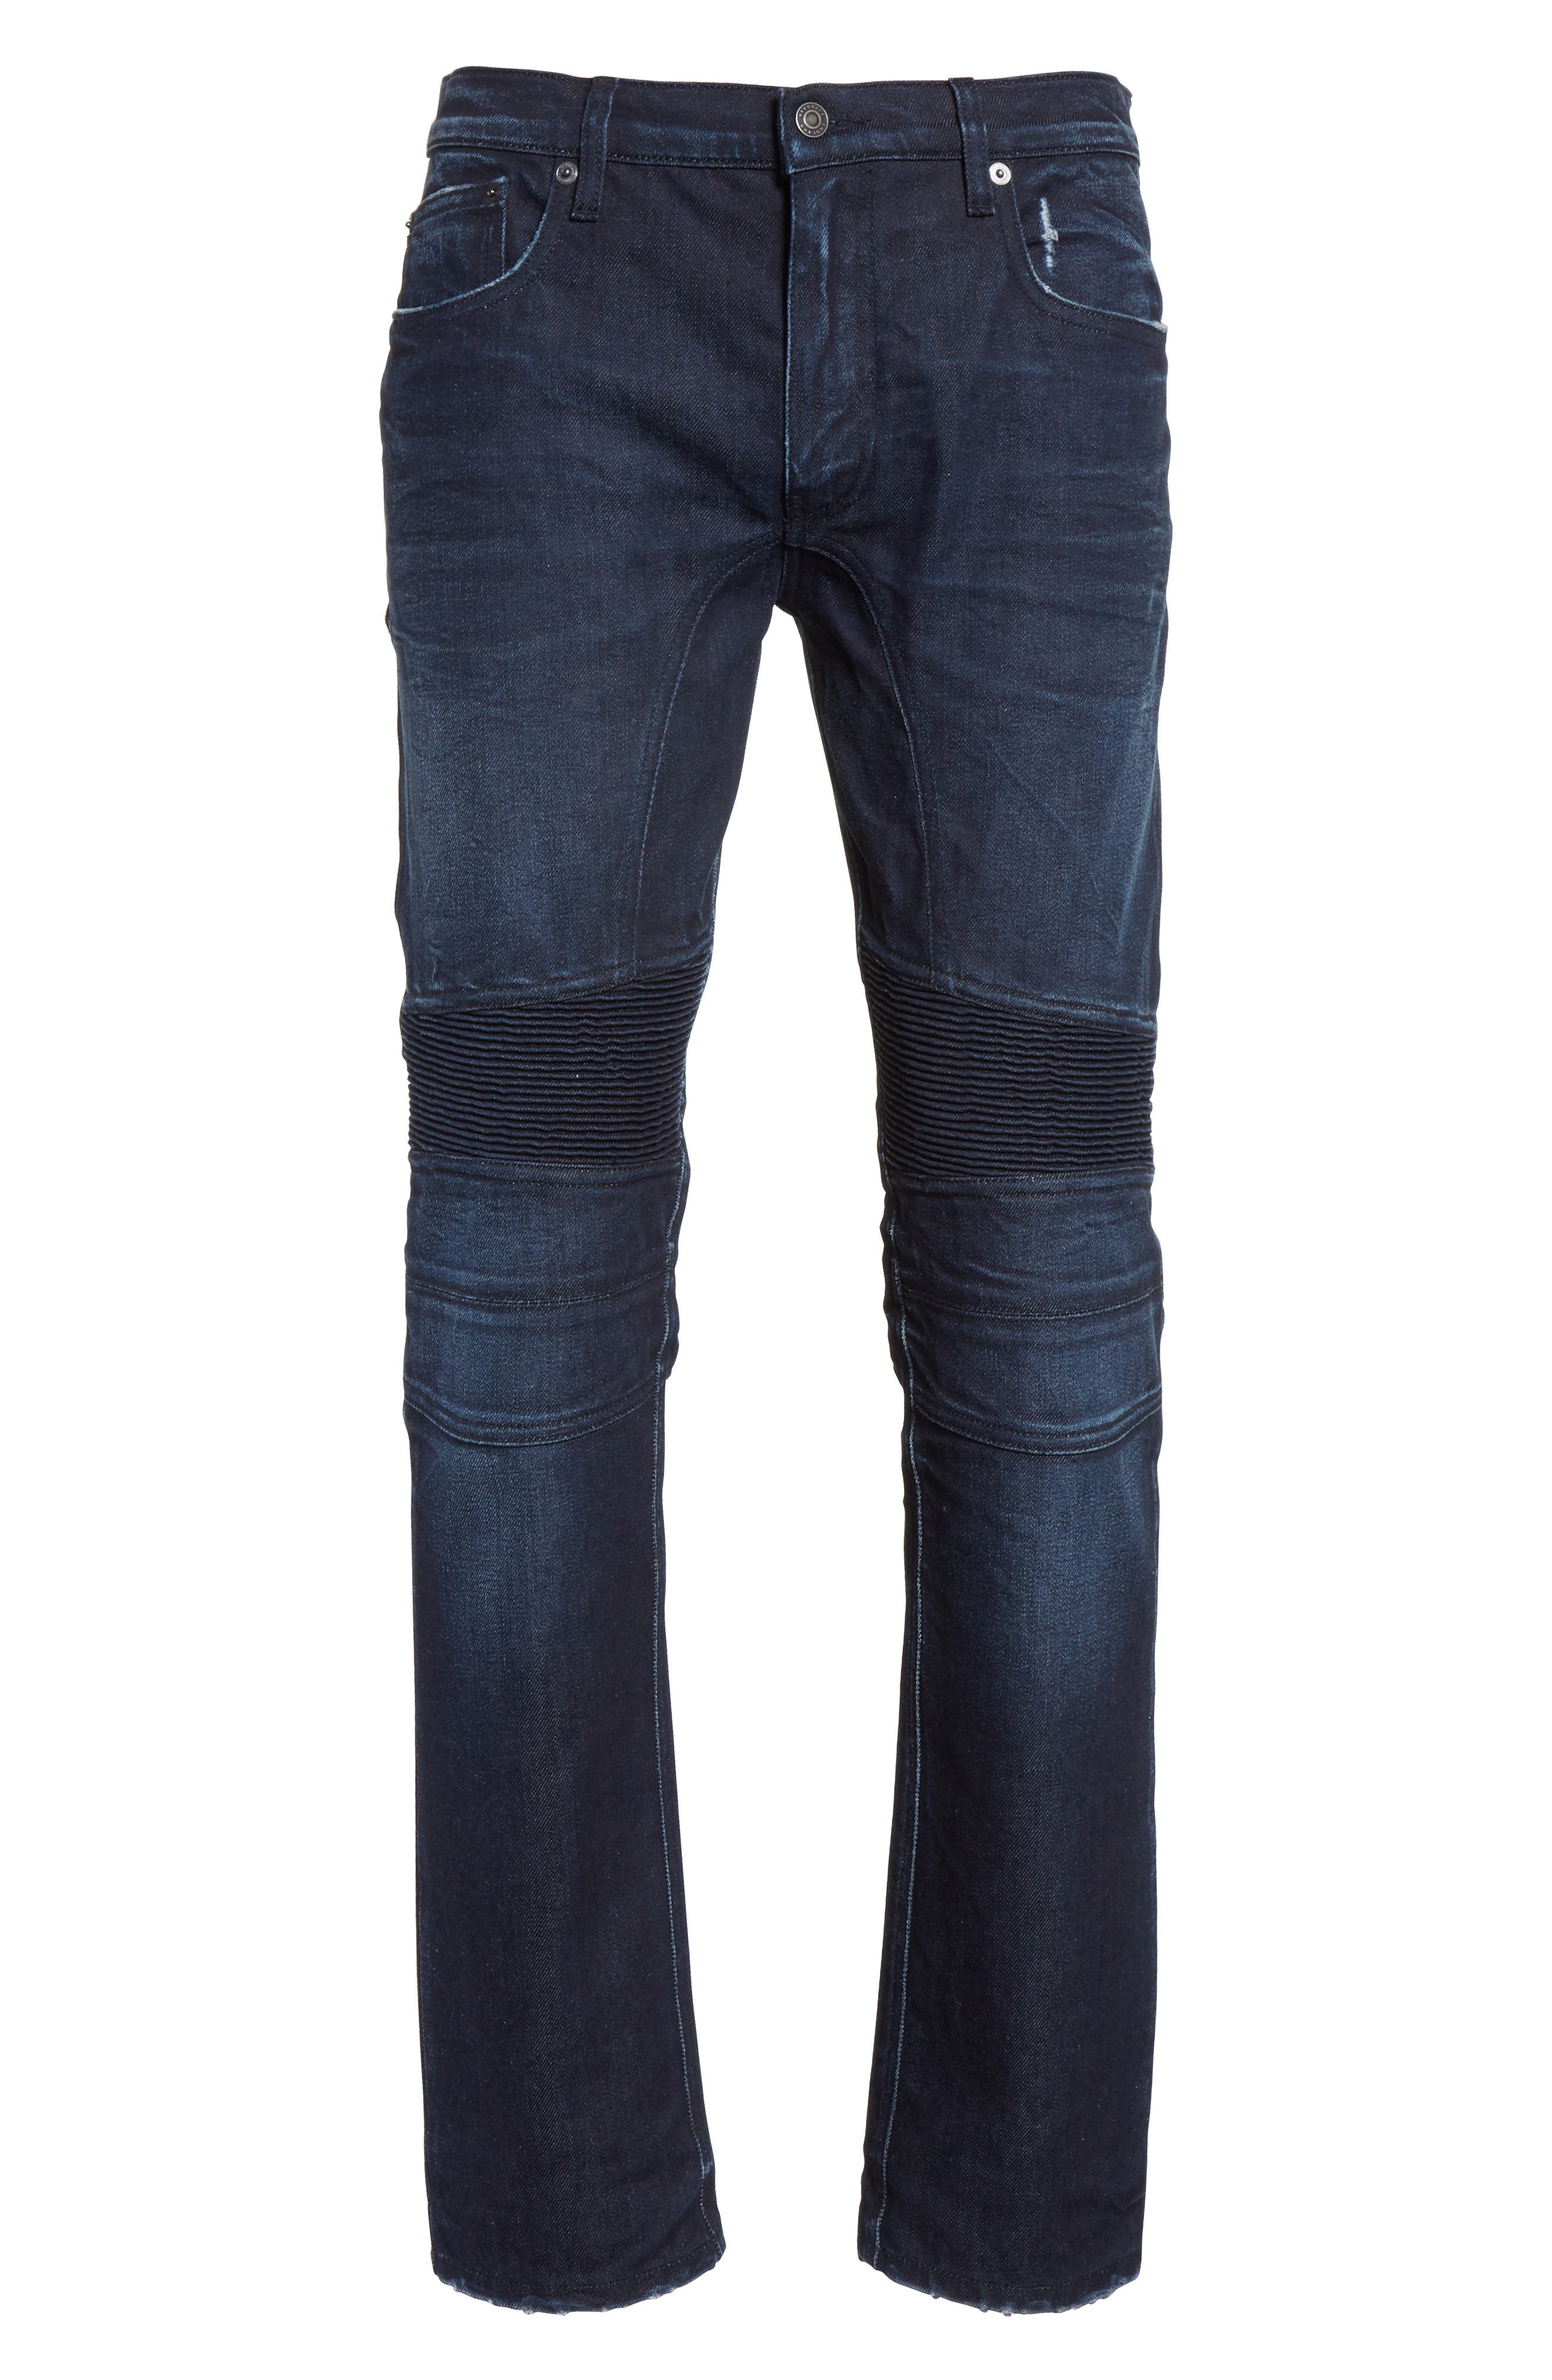 Eastham Washed Moto Jeans,                             Alternate thumbnail 6, color,                             Faded Indigo Blue